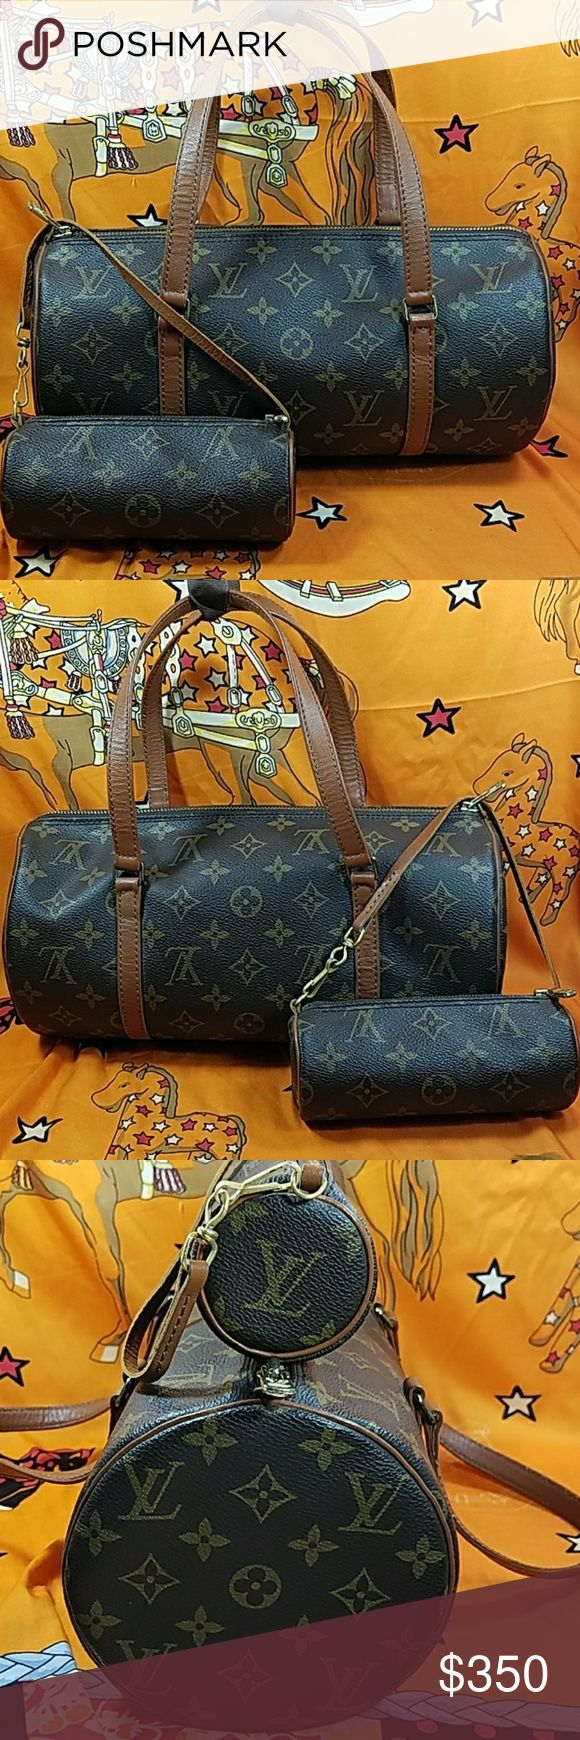 Auth.Louis Vuitton Monogram Papillon & Pochette The outer canvas of both are in good condition.  Leather trims and handles of both  are in good condition also. Inside is nice and clean. The hardwares are tarnished. Date code # TH8812. It made in France. Dimension:(about) 6, 12, & 6. No trade please. Louis Vuitton Bags Satchels